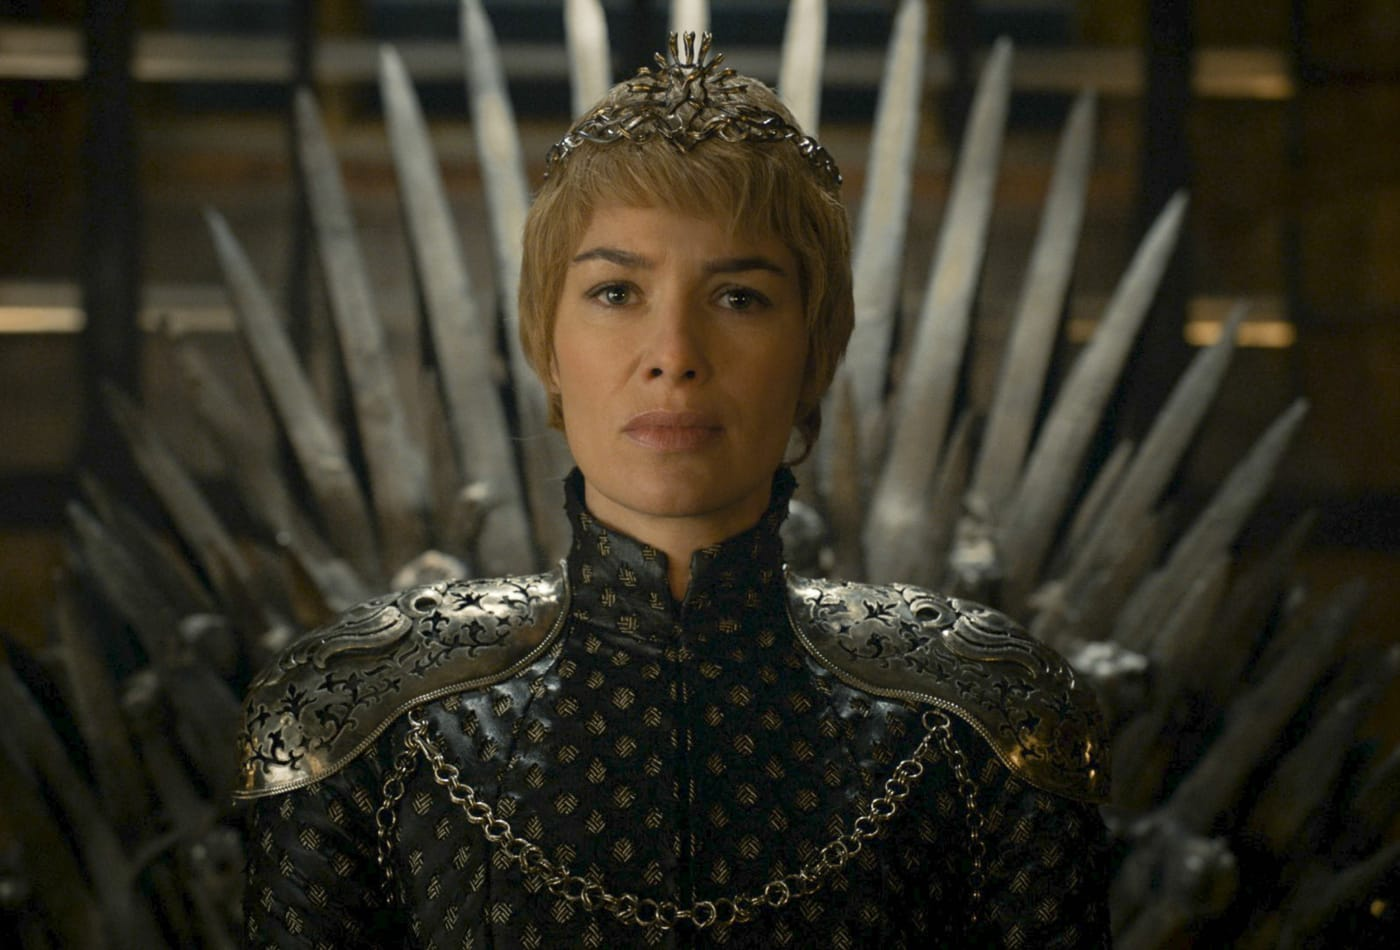 best female character of GOT